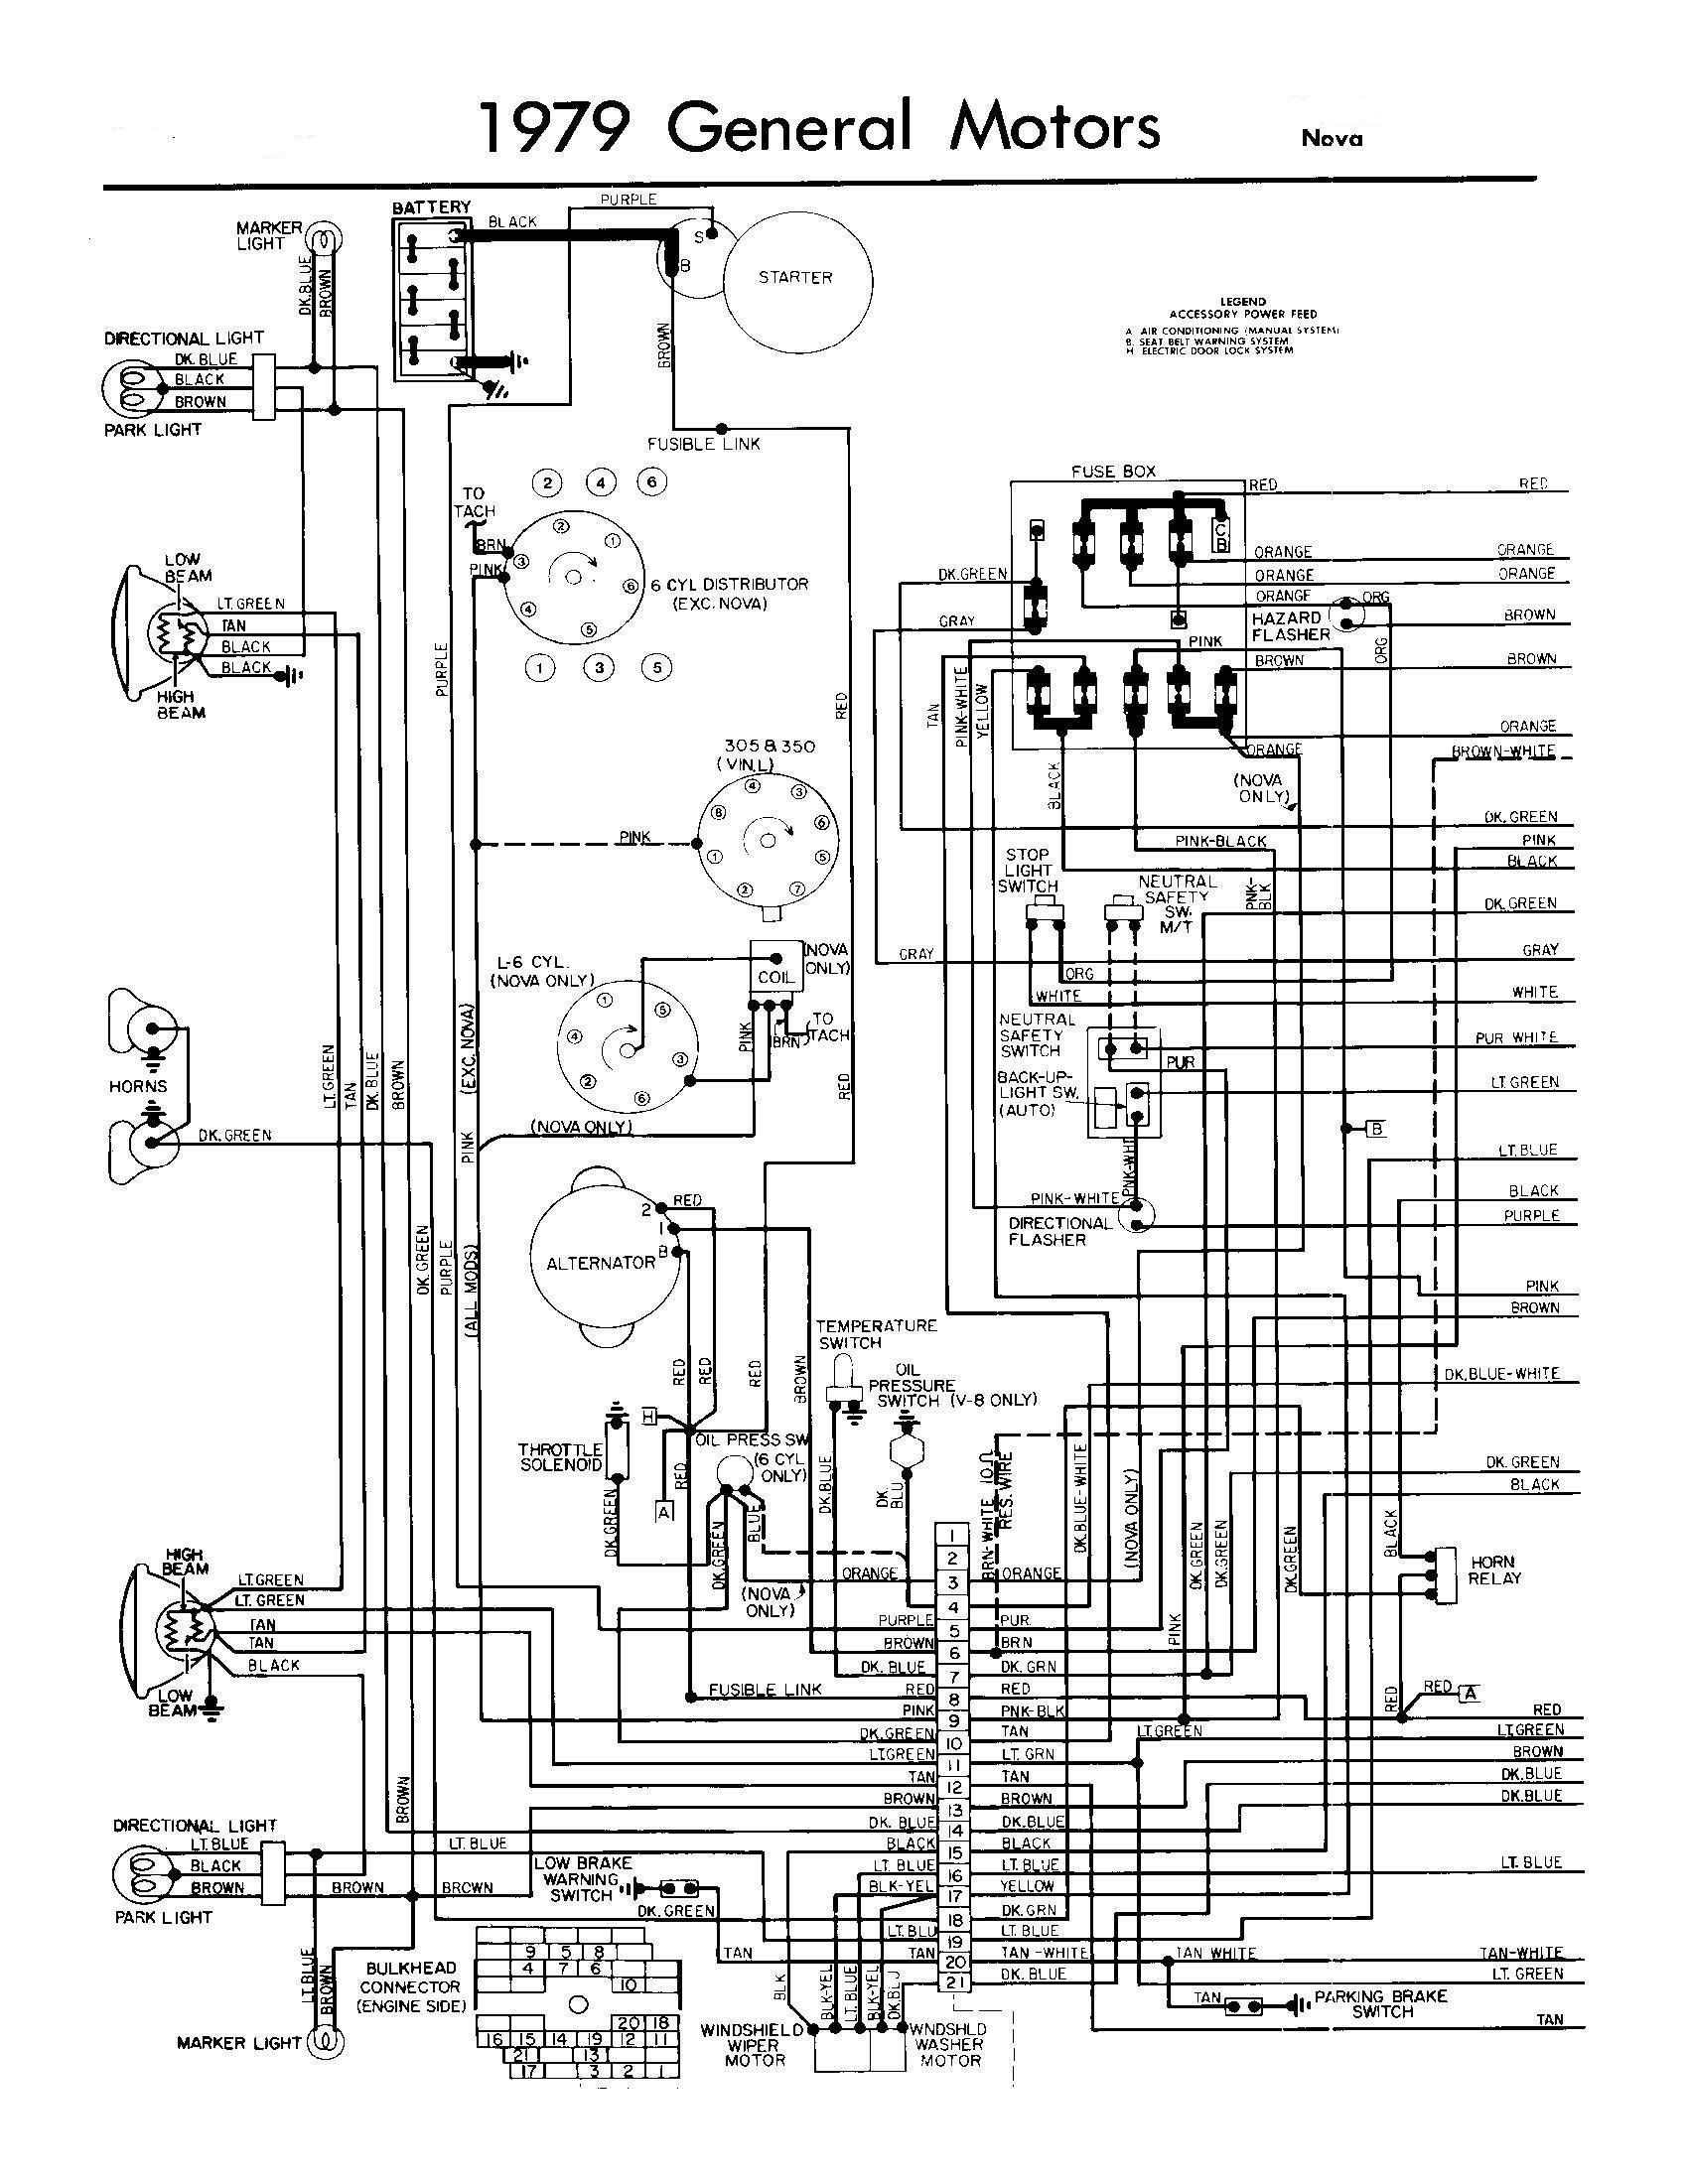 new wiring diagram for club car starter generator diagramnew wiring diagram for club car starter generator [ 1699 x 2200 Pixel ]